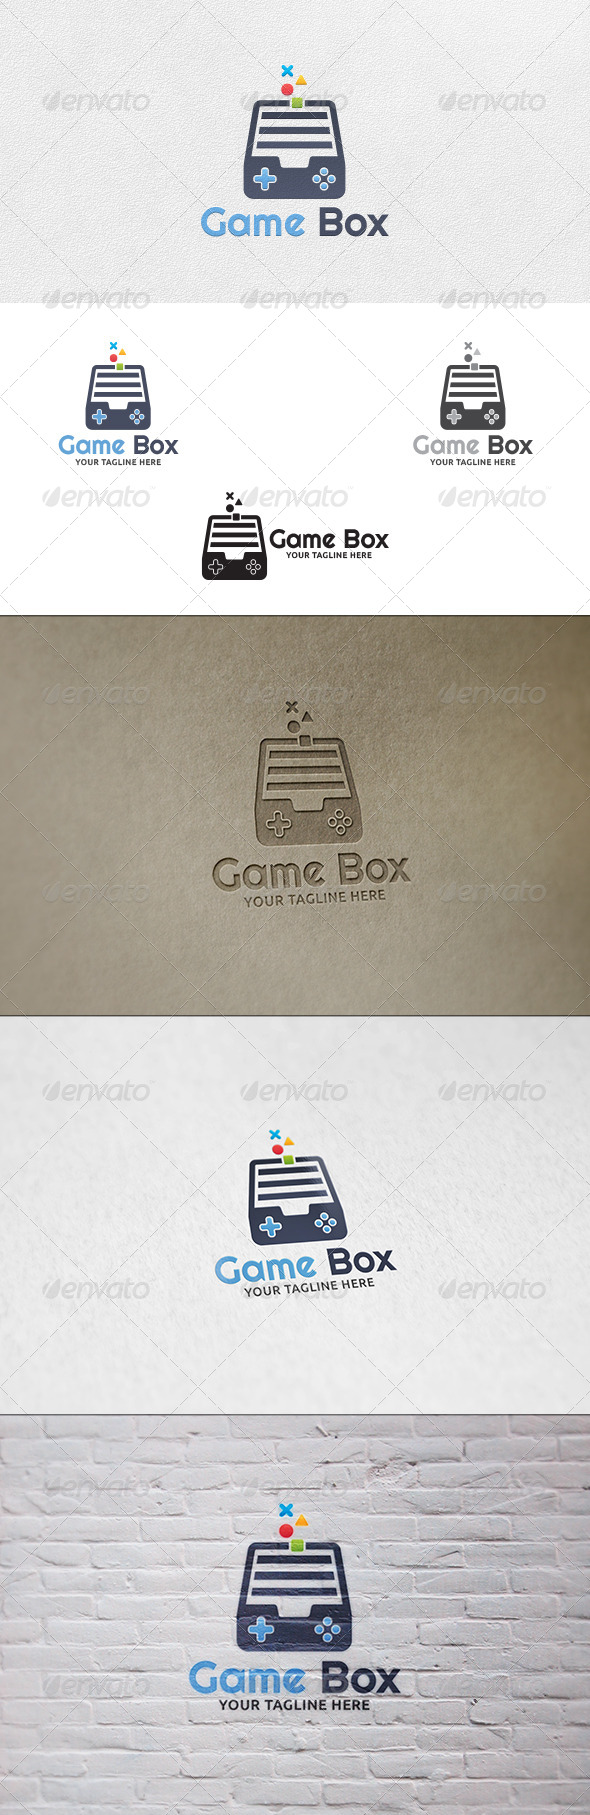 Game Box - Logo Template - Objects Logo Templates